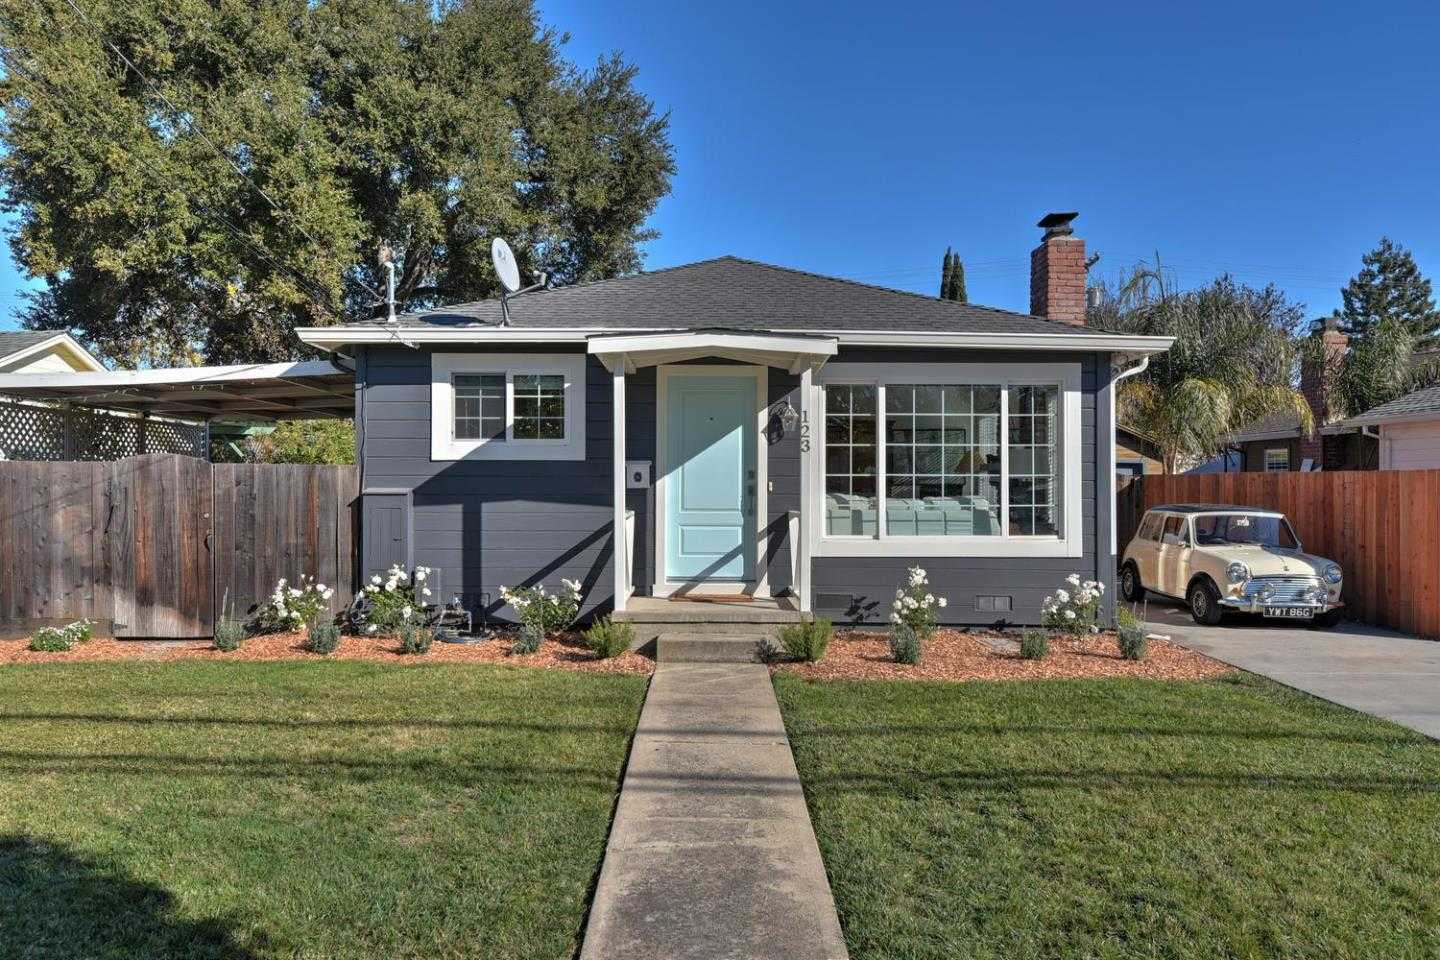 $1,095,000 - 3Br/1Ba -  for Sale in Redwood City